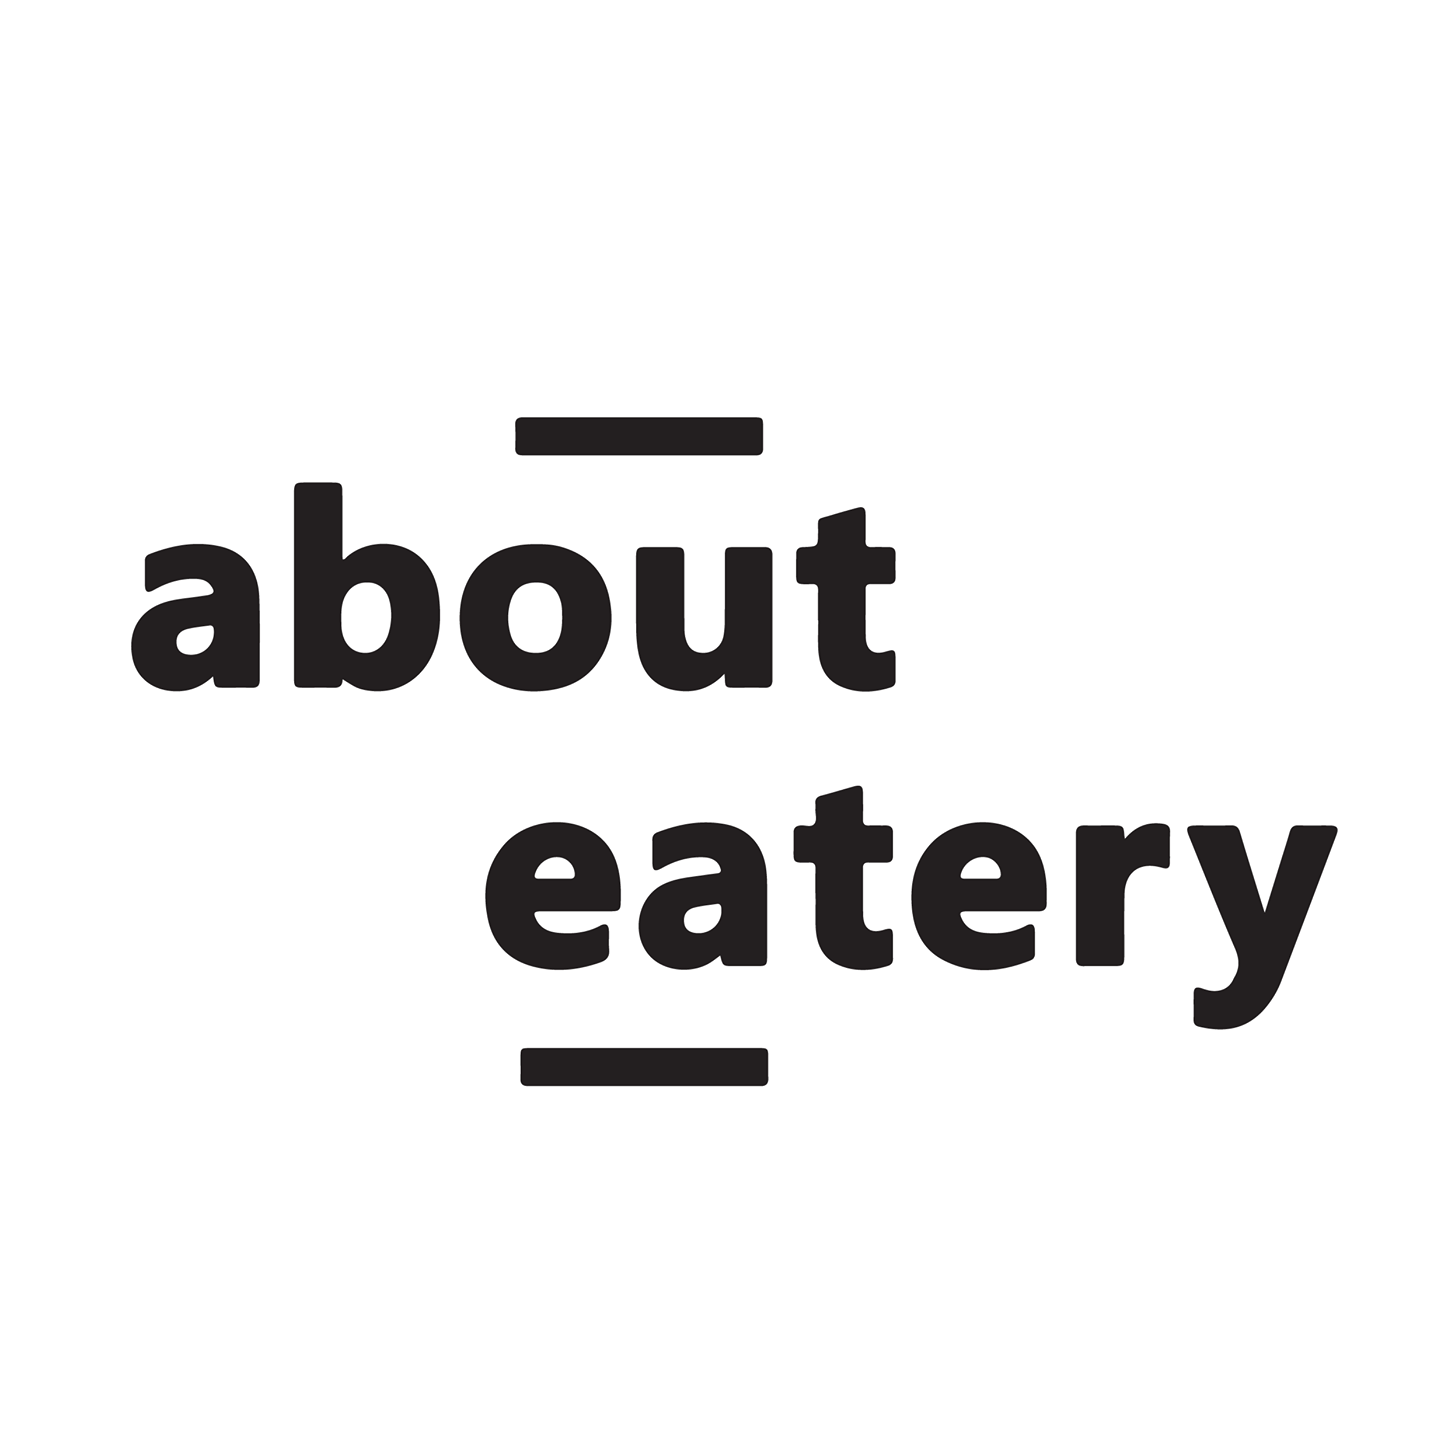 About Eatery